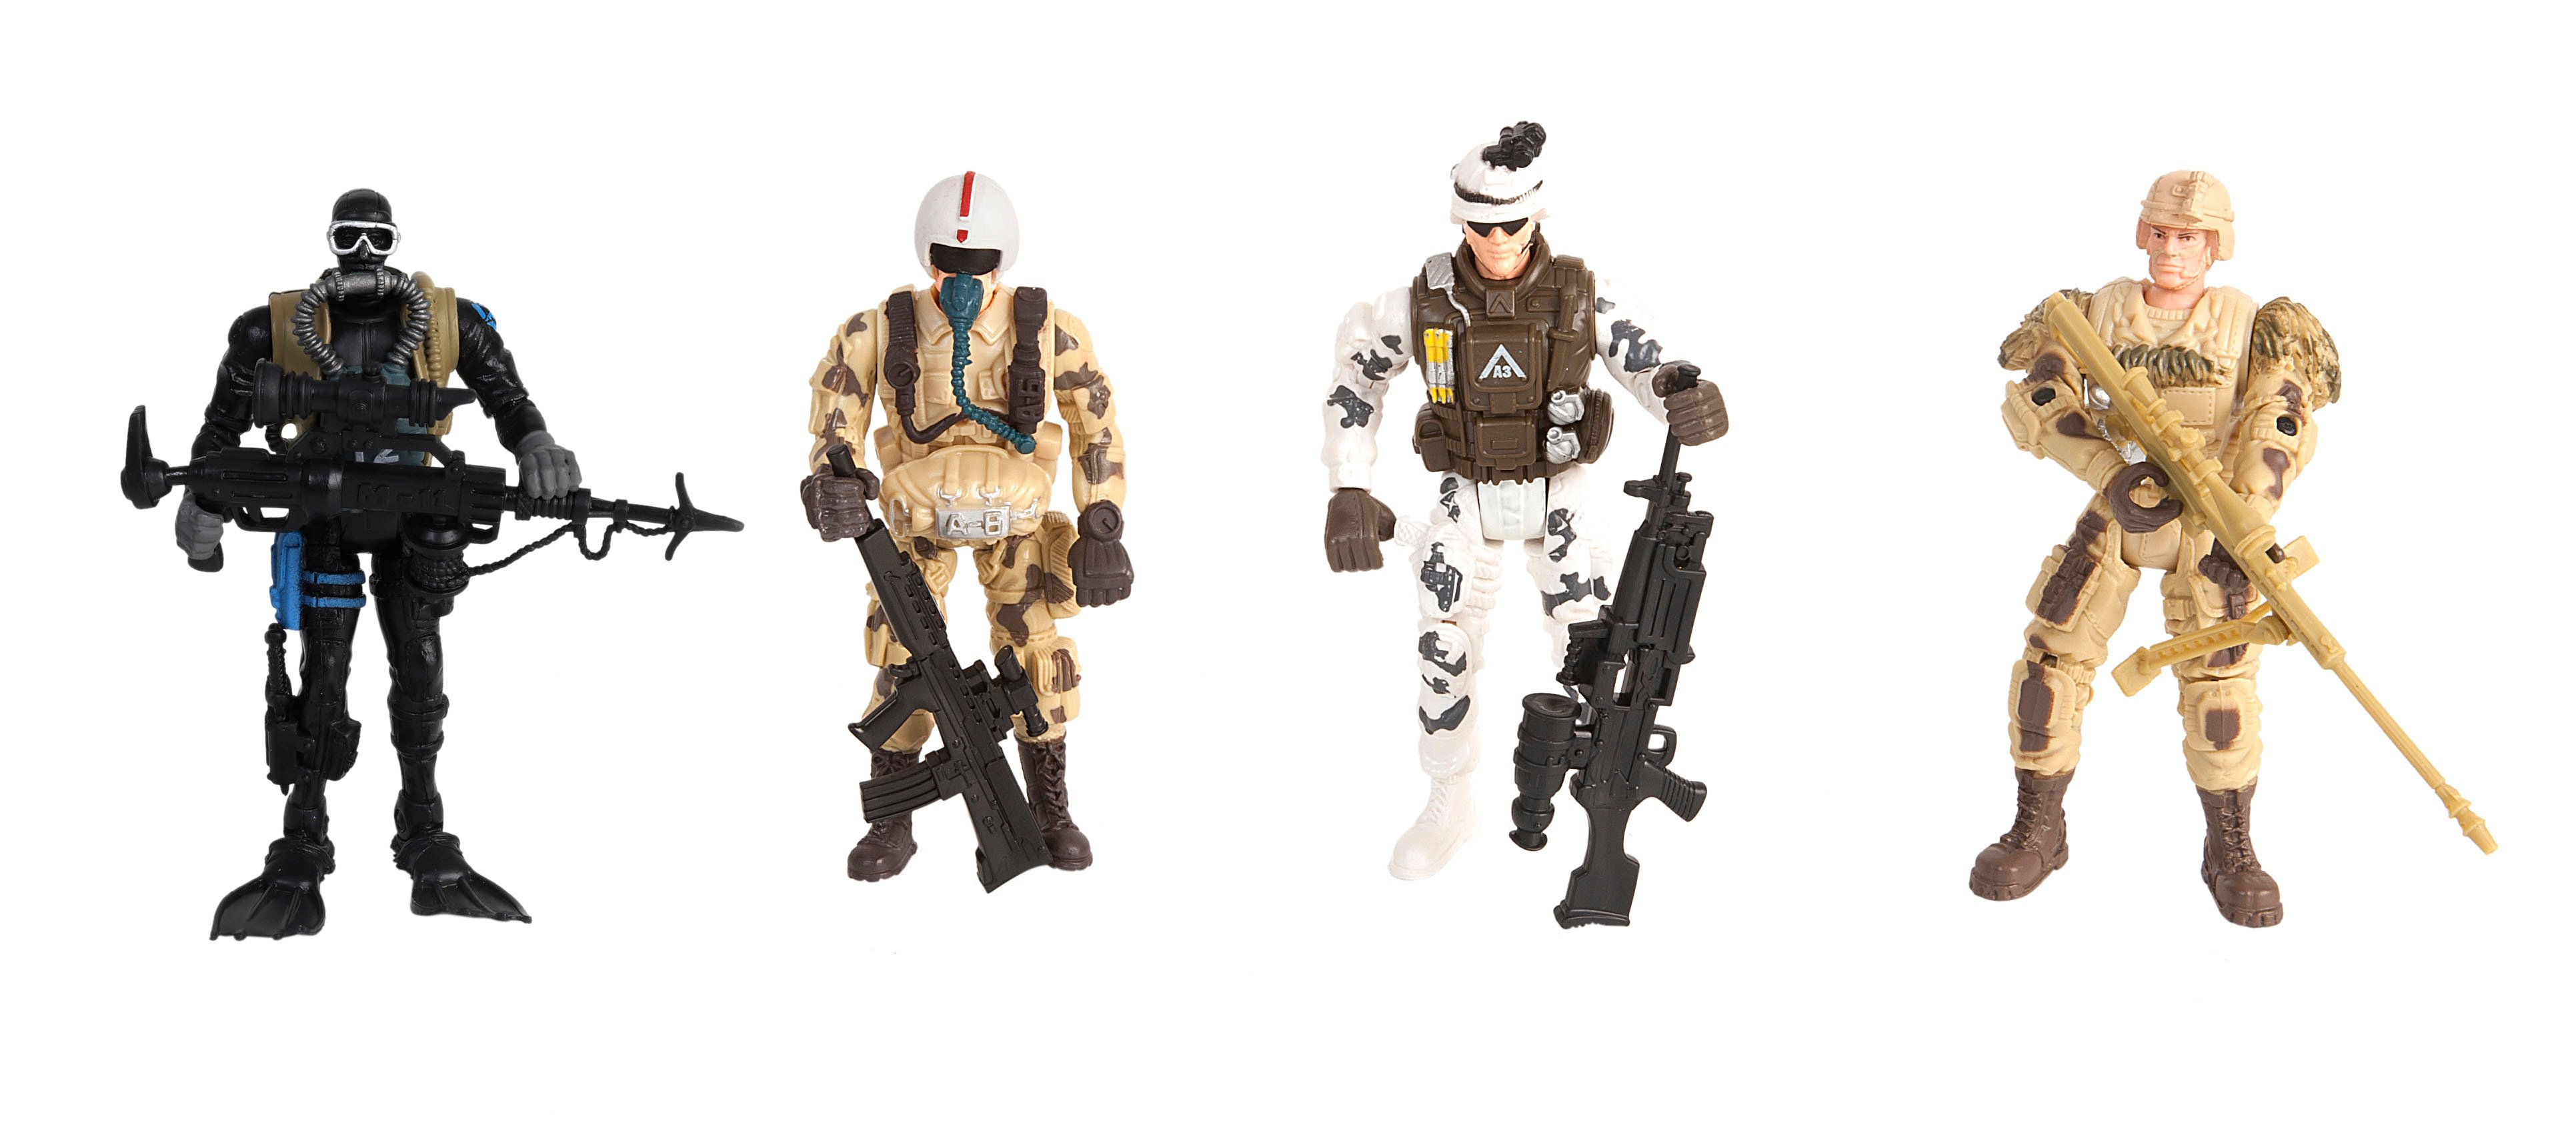 Soldier Force - Squad Patrol Figure Set (545003)